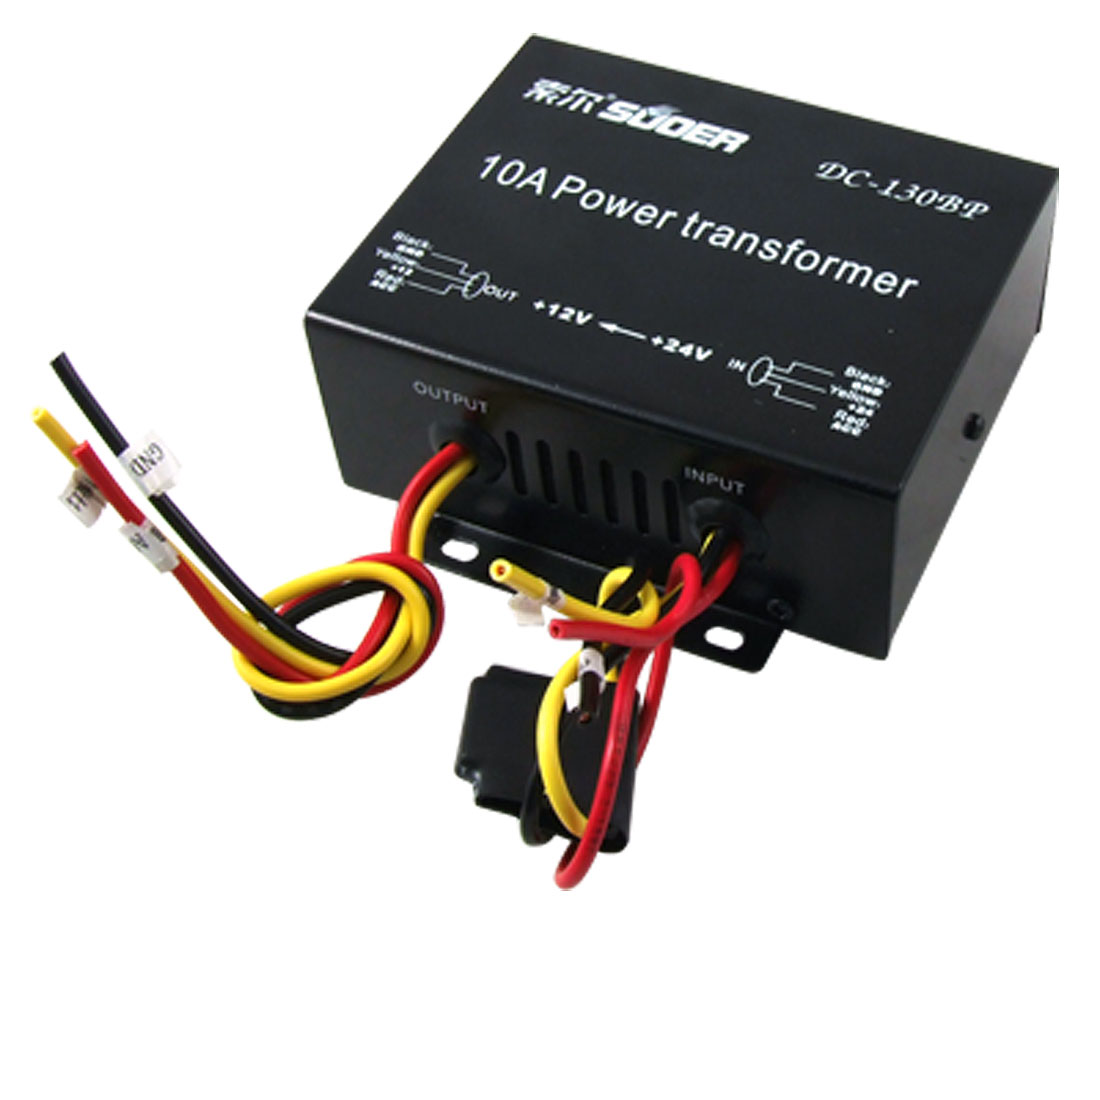 10A DC 18V-32V to 12V Car Power Supply Transformer Black